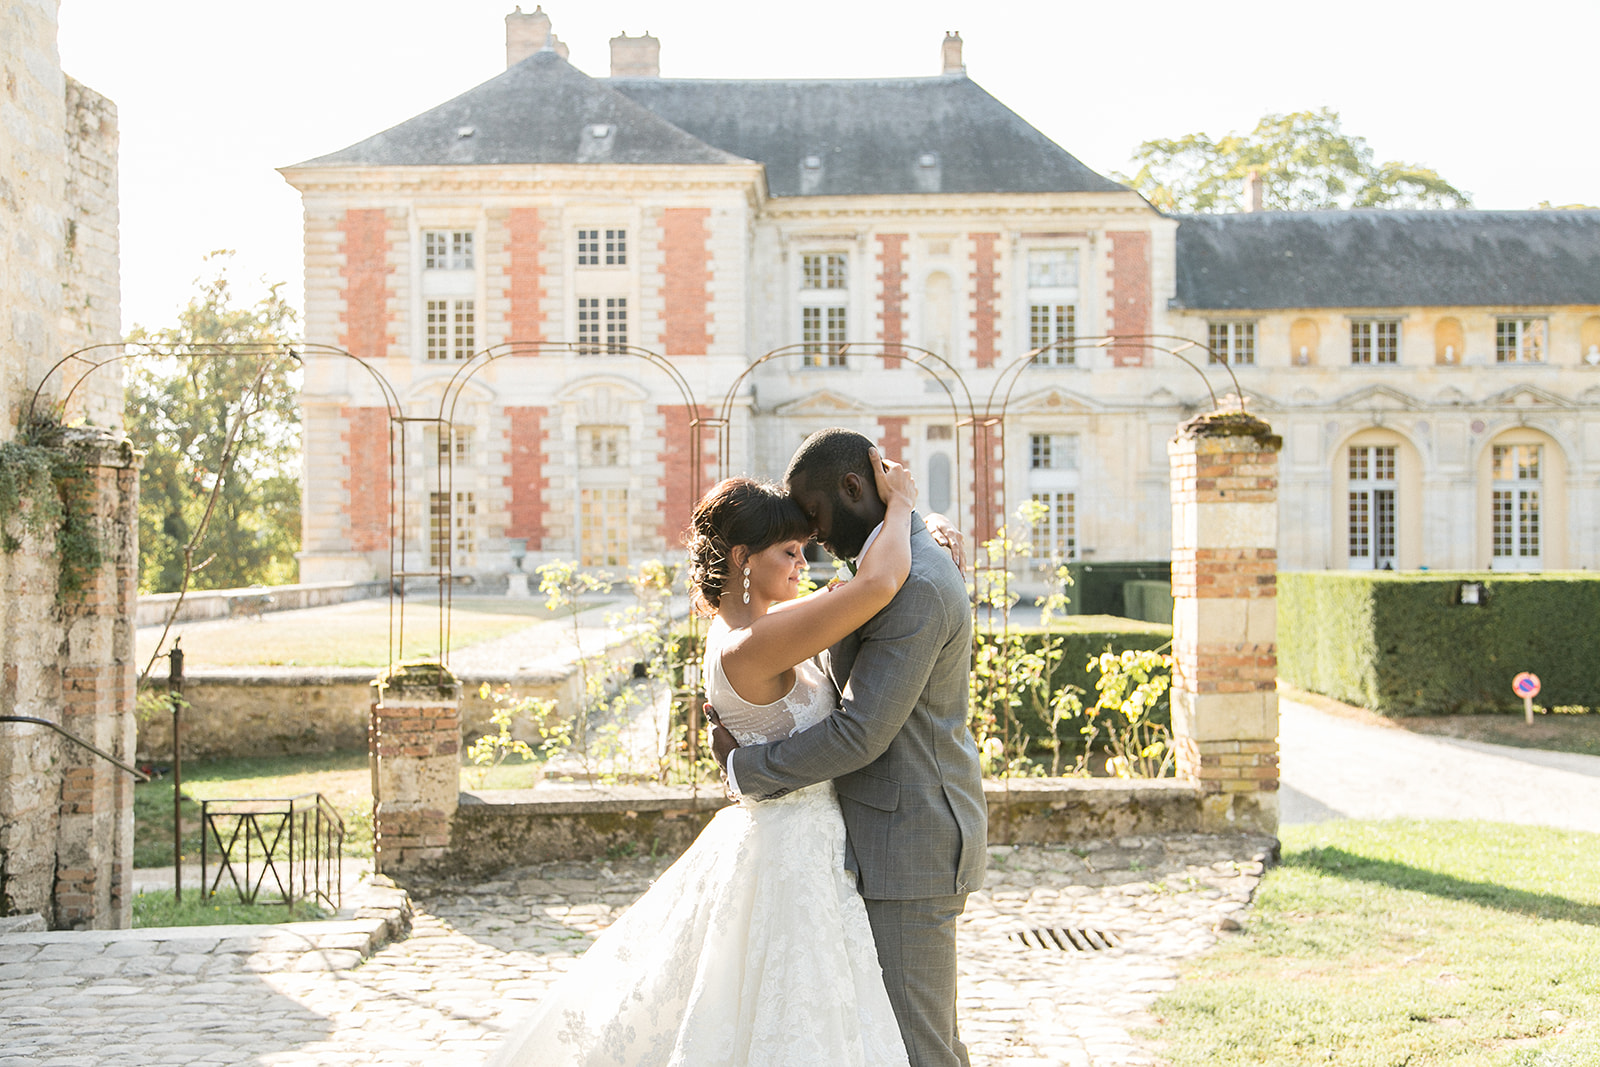 chateau wedding venue in Paris, France